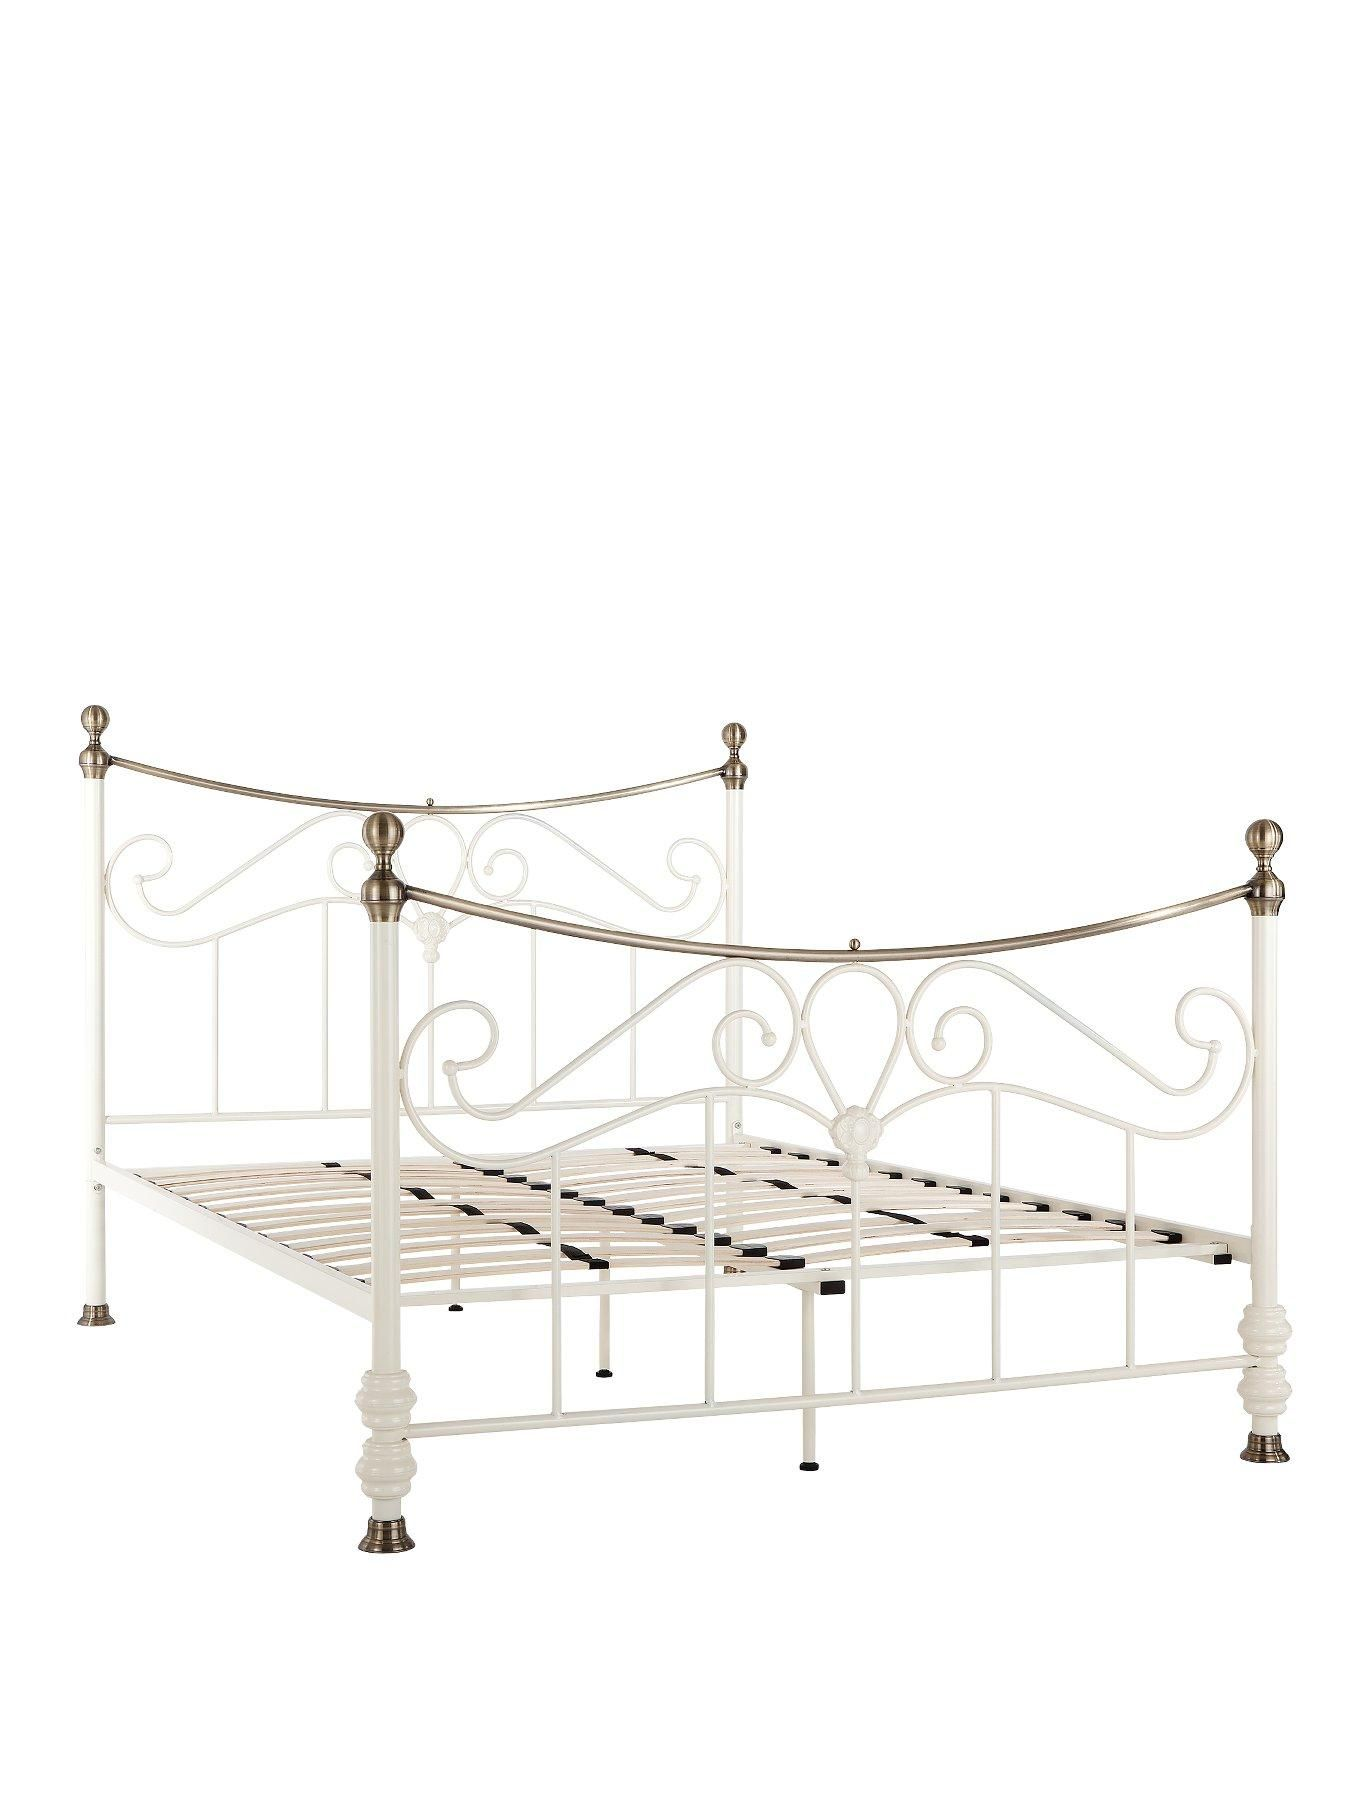 Lytham Metal Double Bed Frame In Cream Gloss This Vintage Style Has A Breathtaking Ornate Design To The Head And Foot Ends